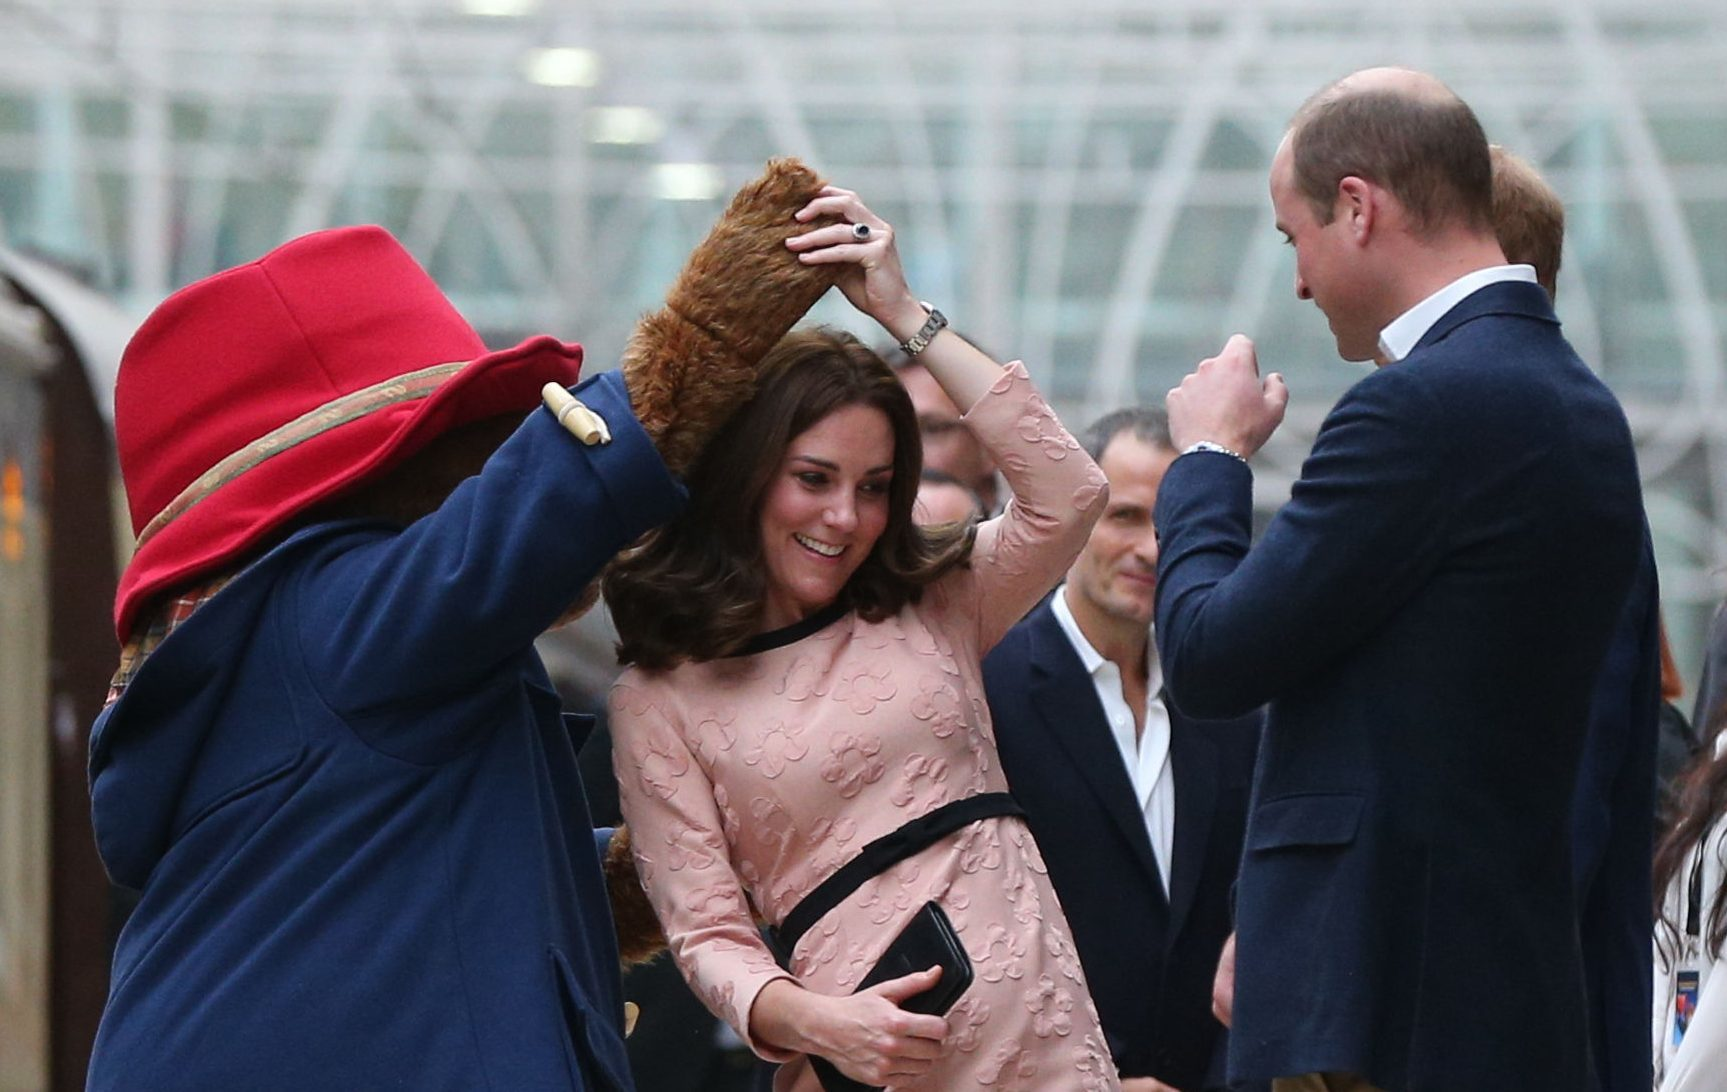 The Duke of Cambridge watches as his wife the Duchess of Cambridge dances with a costumed figure of Paddington bear